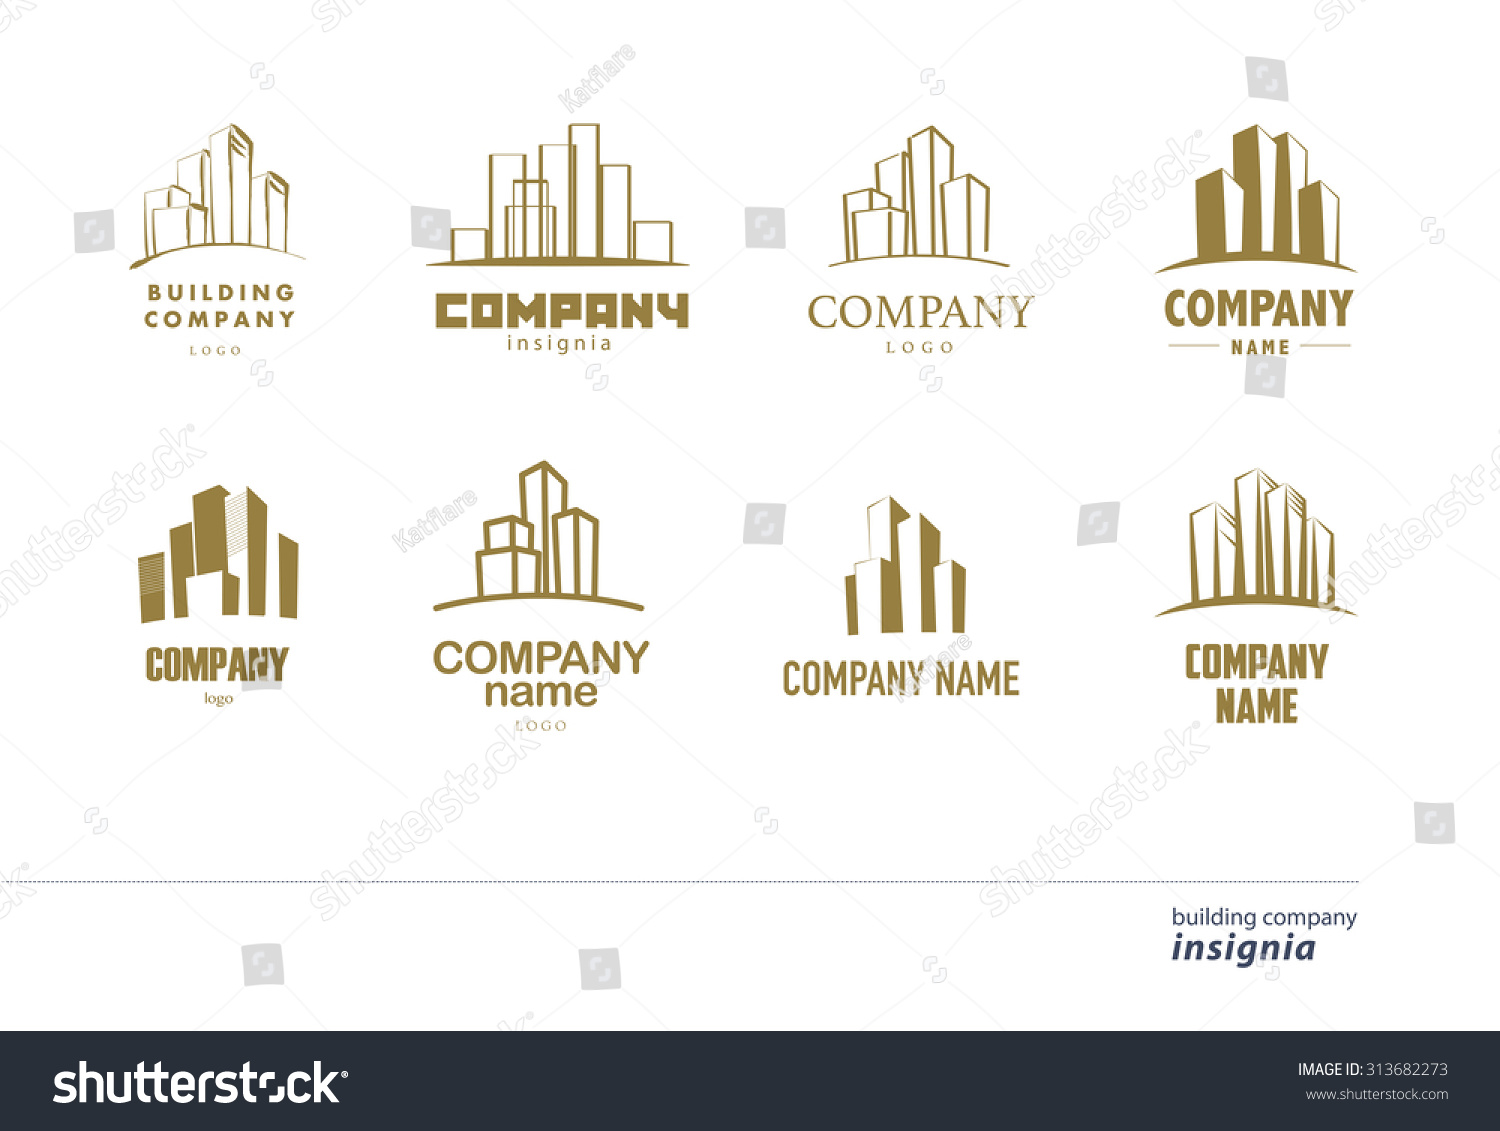 Royalty free logo design for urban building company for Architecture design company